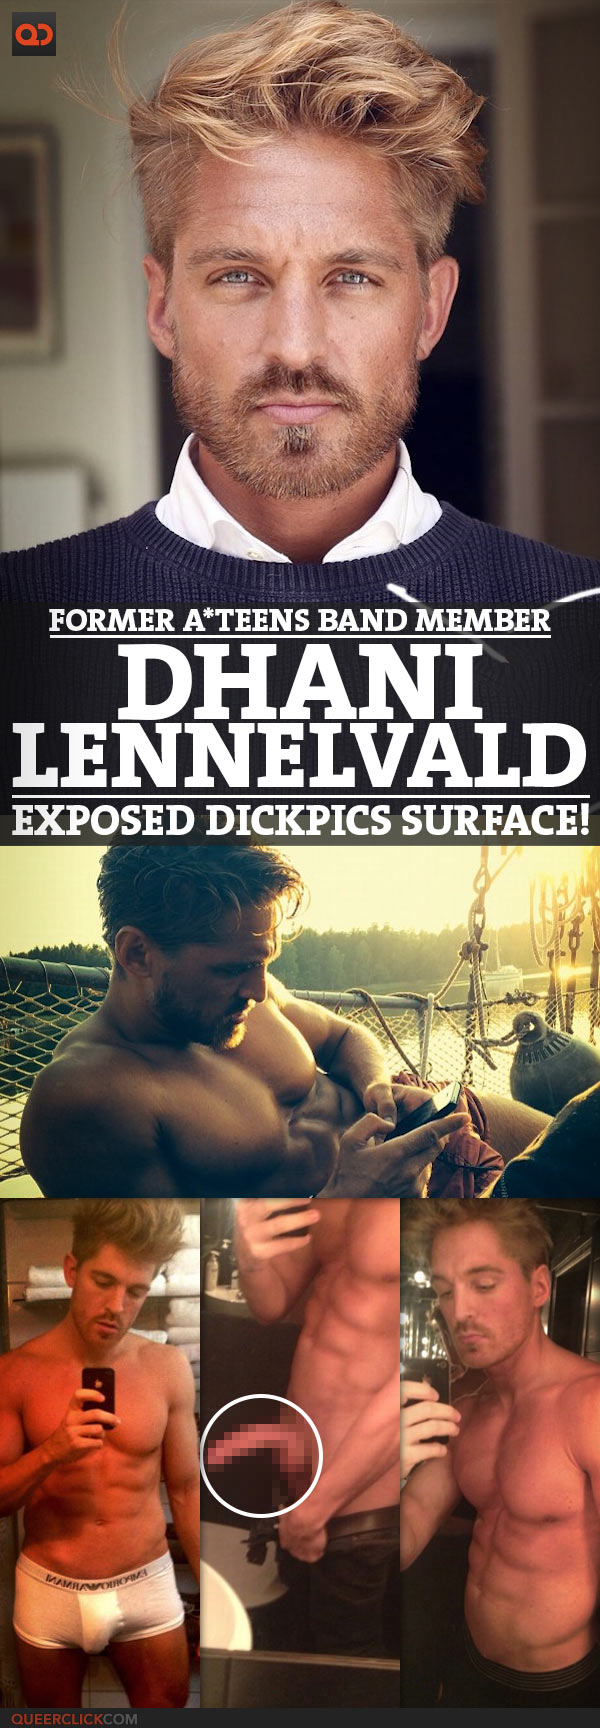 Dhani Lennelvald, Former A*Teens Band Member, Exposed DickPics Surface!